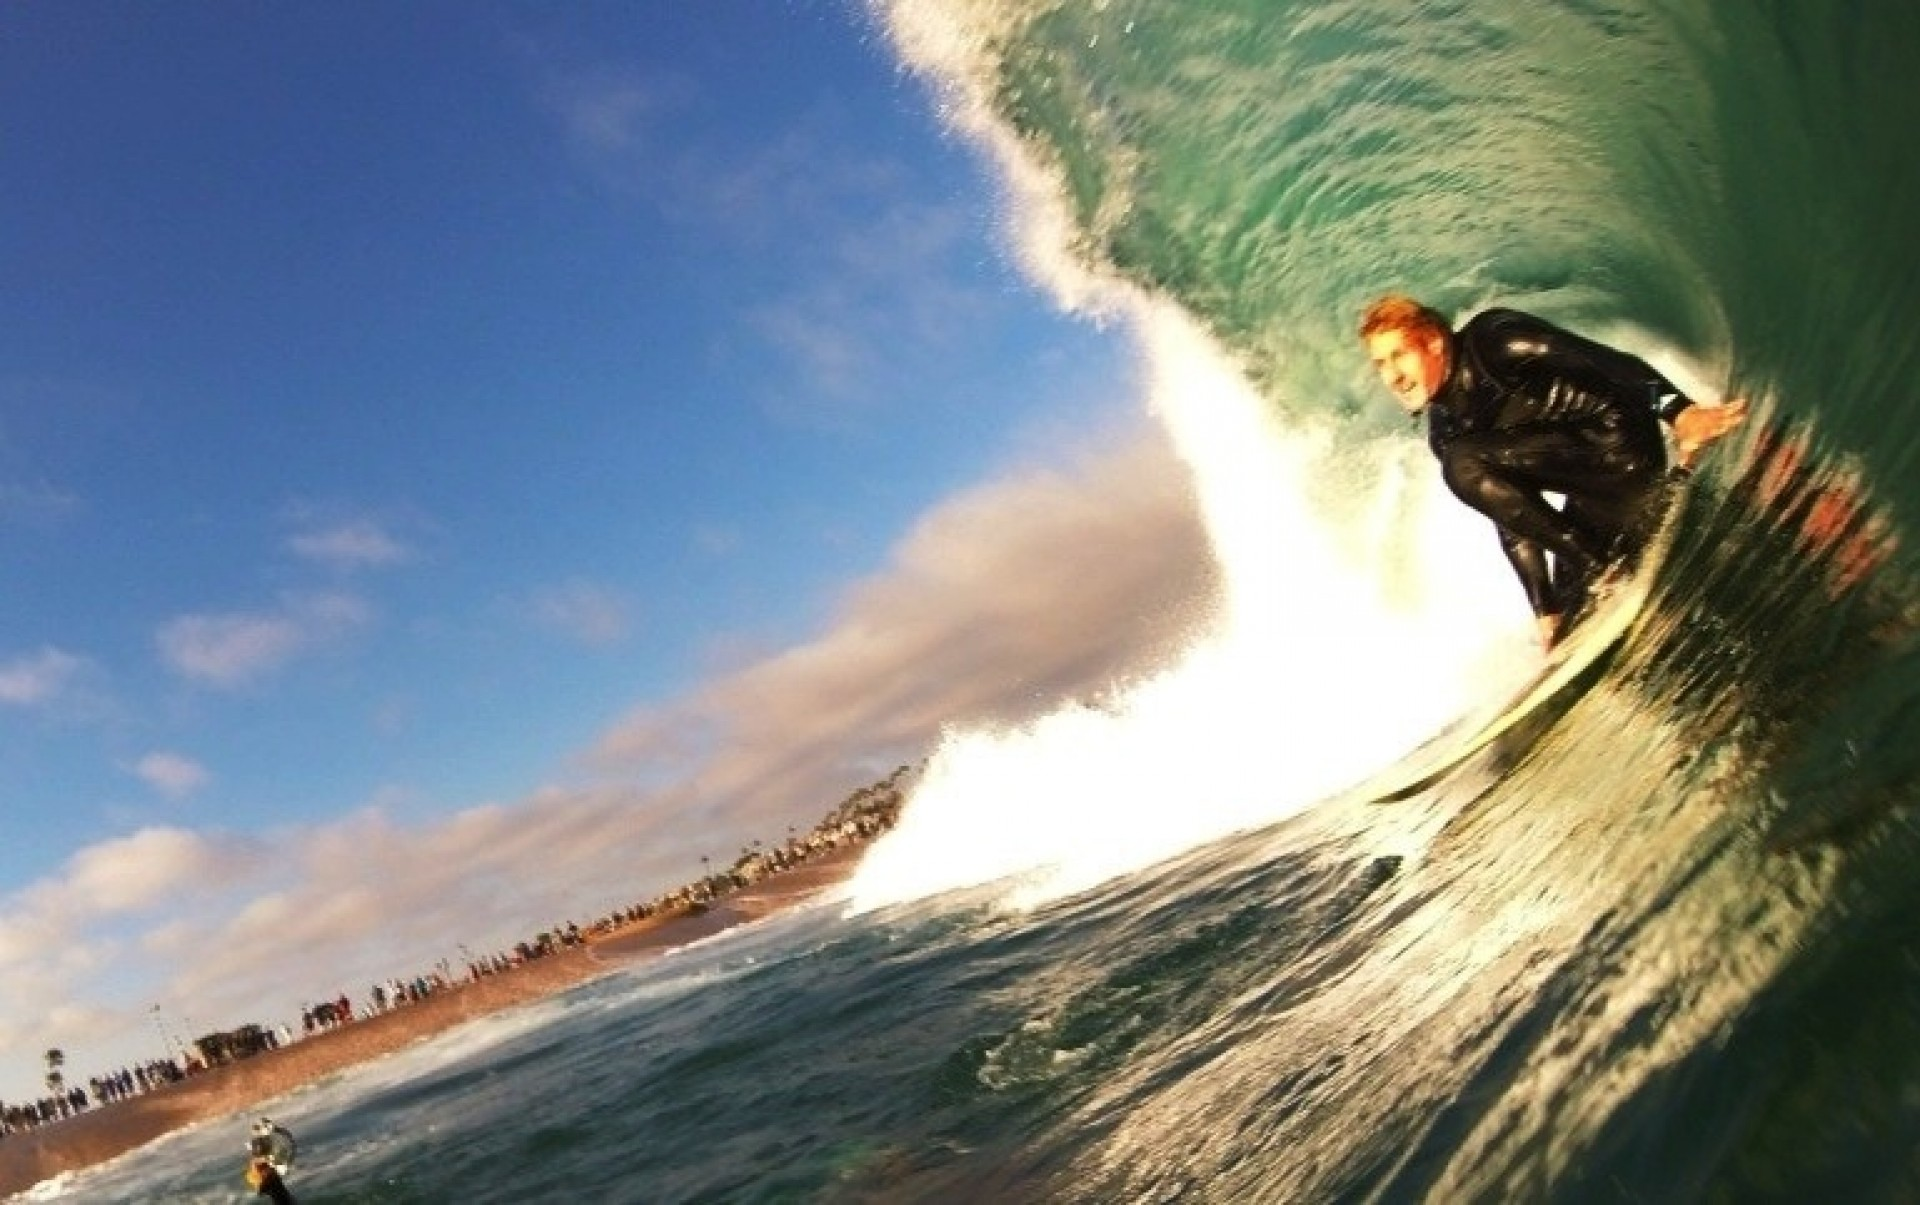 Mike Townsend's photo of The Wedge